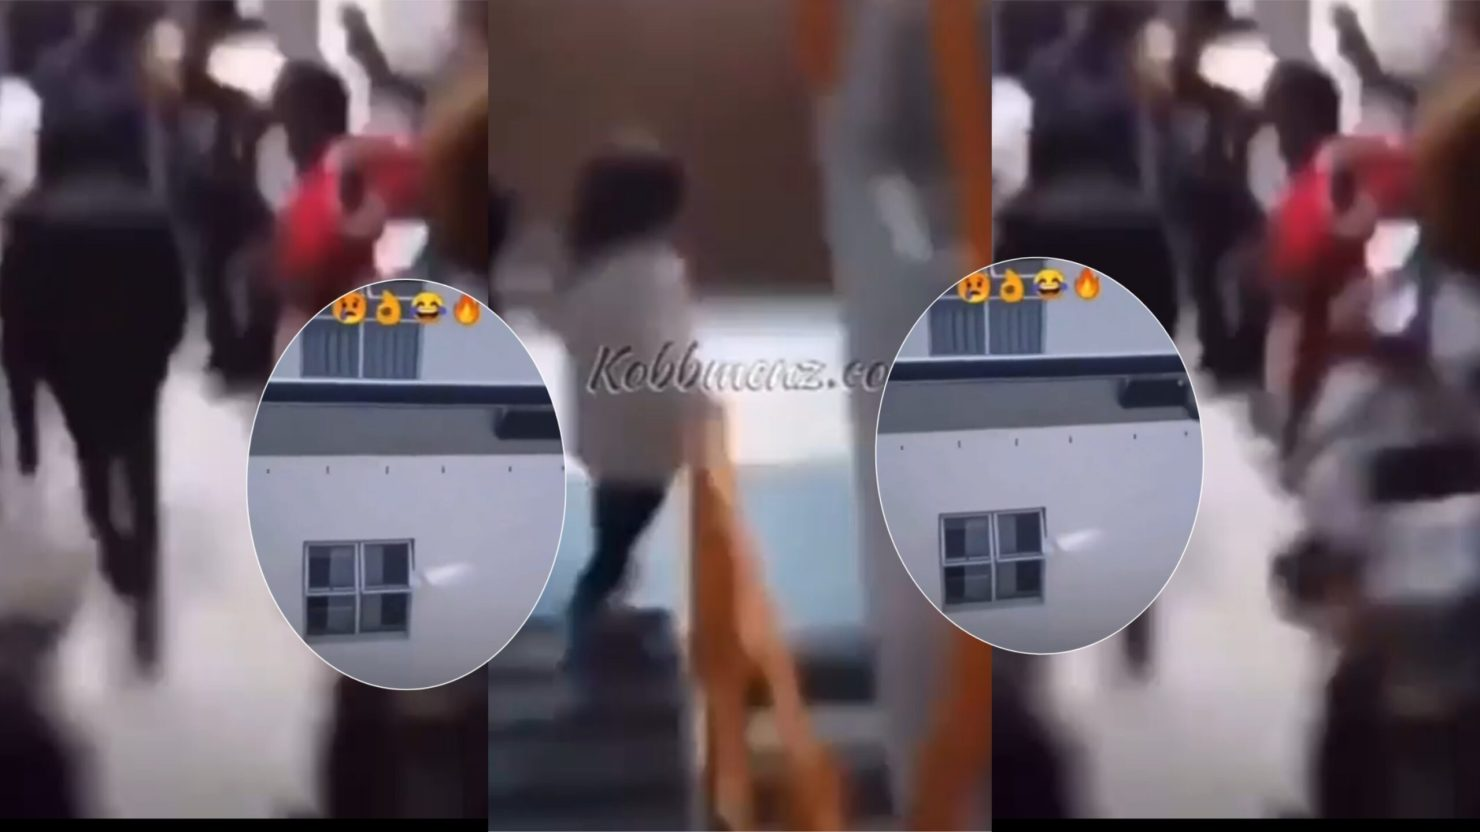 Students Troop To Hail Colleague After F!ring A Lady Hard In Bed [Watch Video]